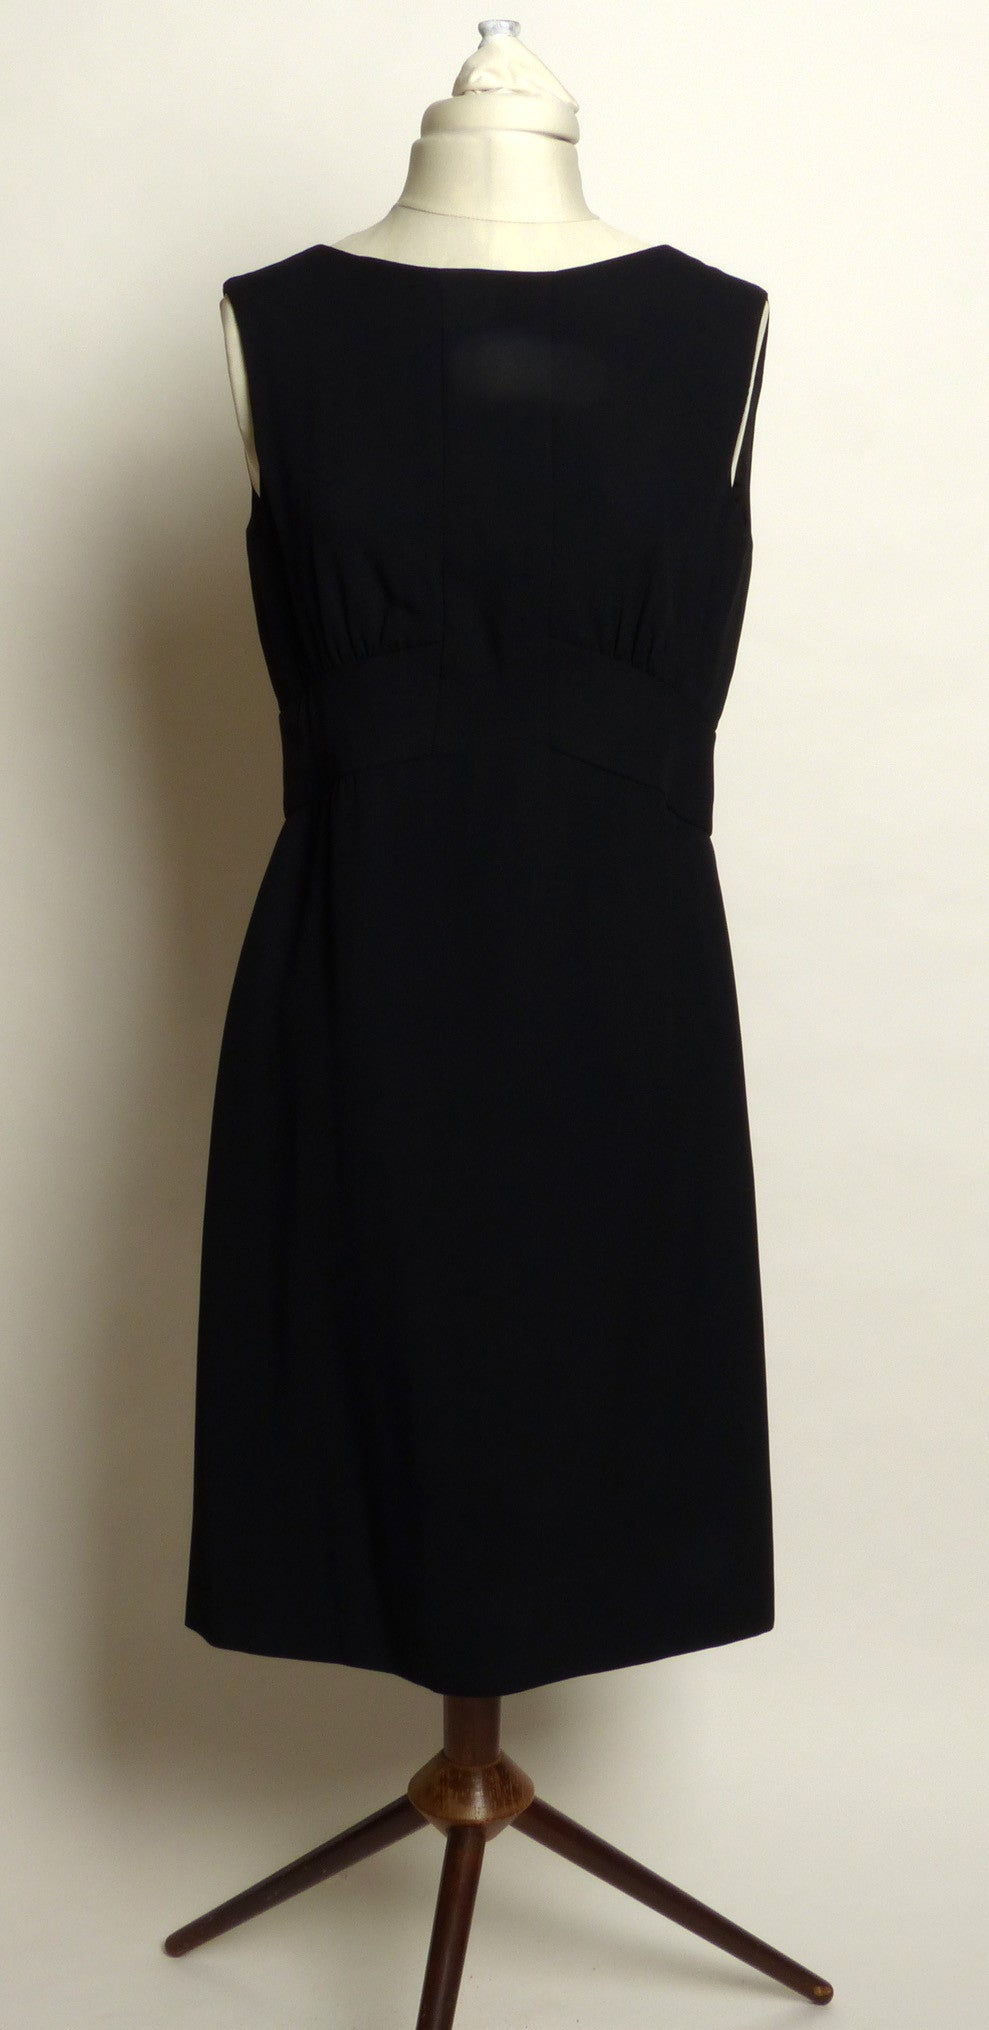 Circa Late 1950s/Early 1960s Simpson's Open Back Cocktail Dress